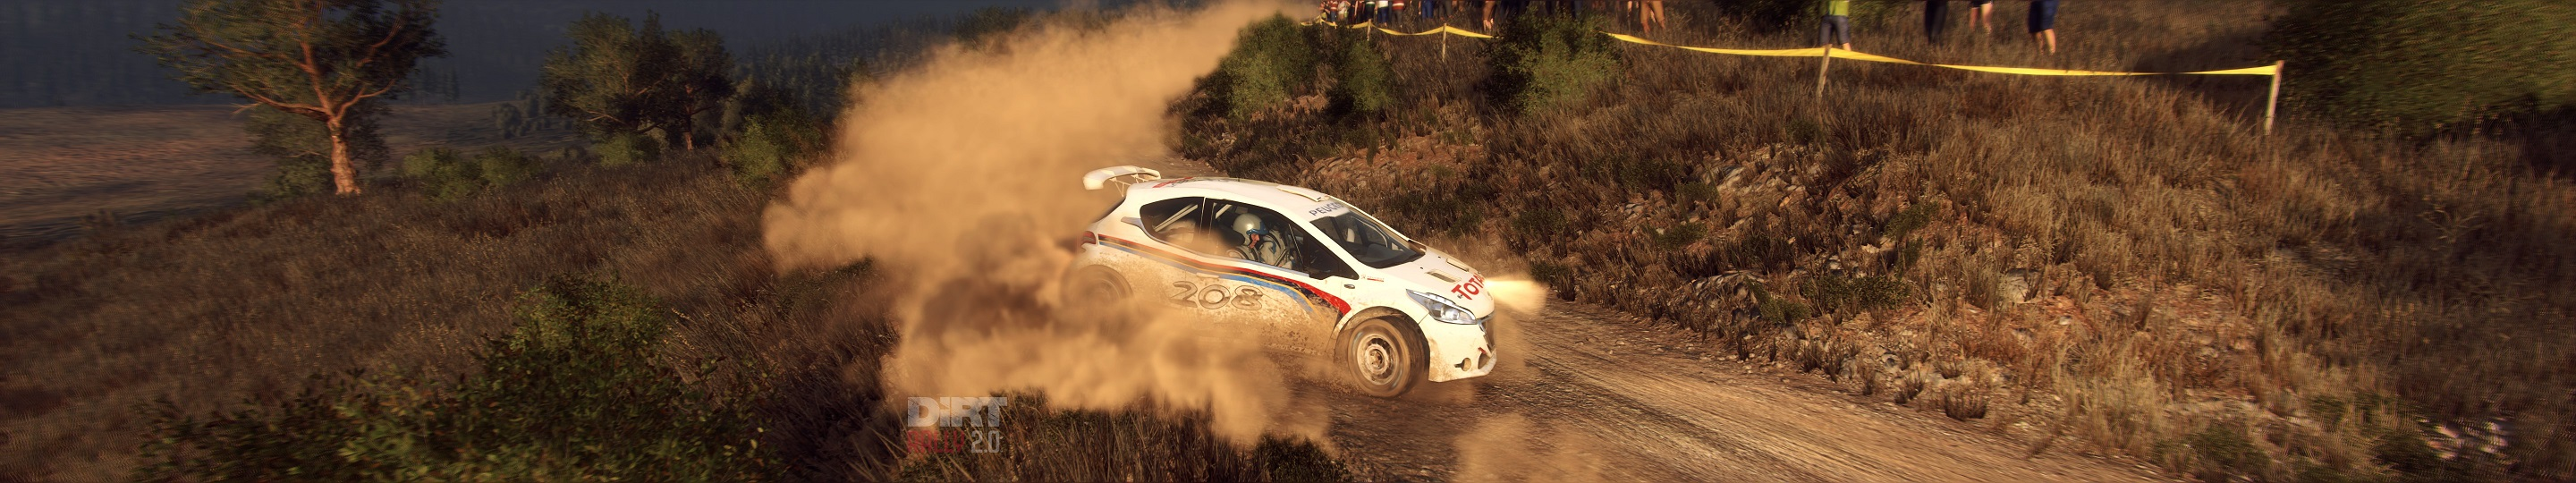 4 DIRT RALLY 2 GREECE with R5 PEUGEOT copy.jpg